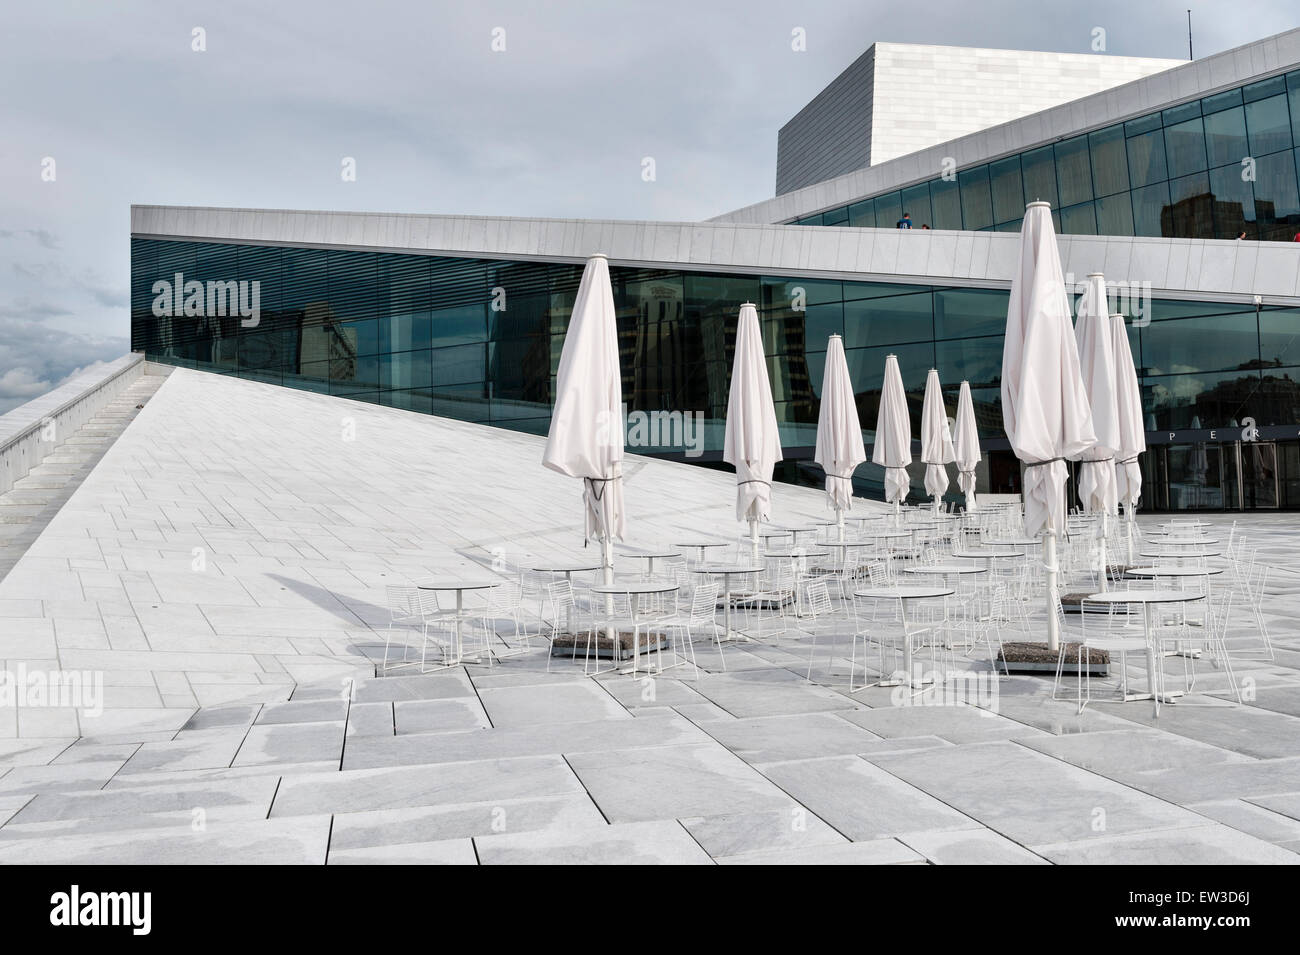 The Oslo Opera House (Operahuset), Oslo, Norway. Designed by the Norwegian architects Snohetta and opened in 2008 - Stock Image